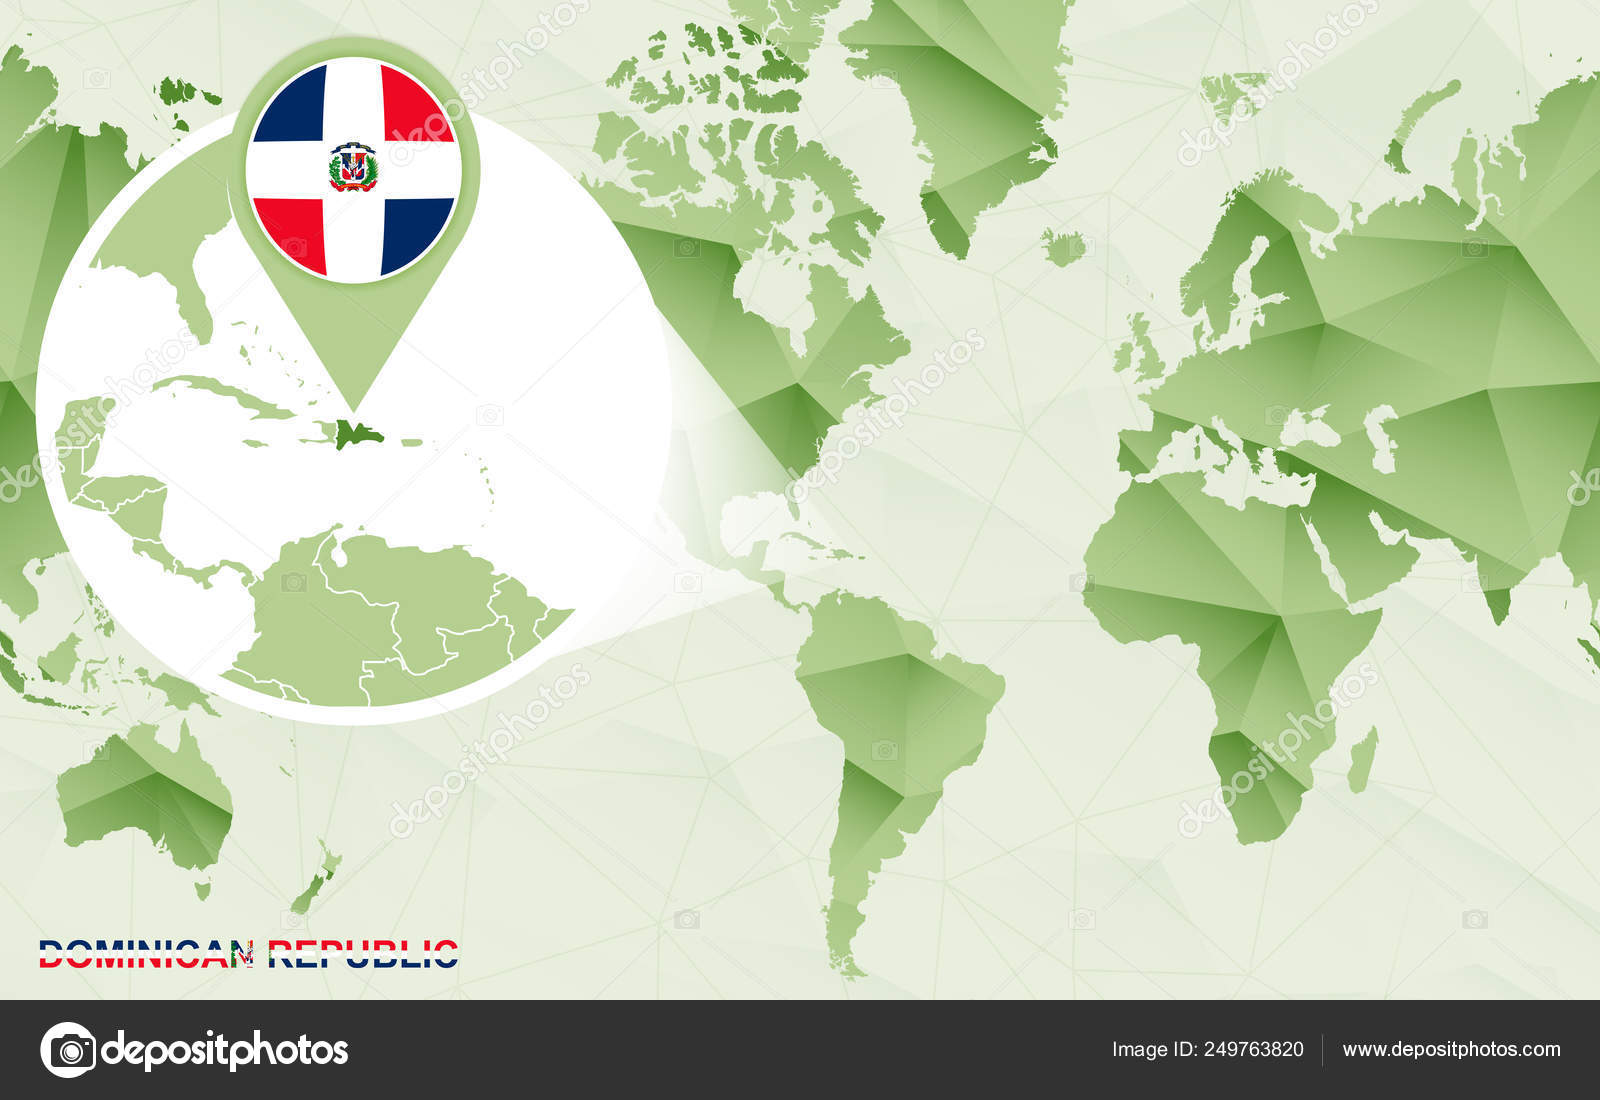 America centric world map with magnified Dominican Republic ...